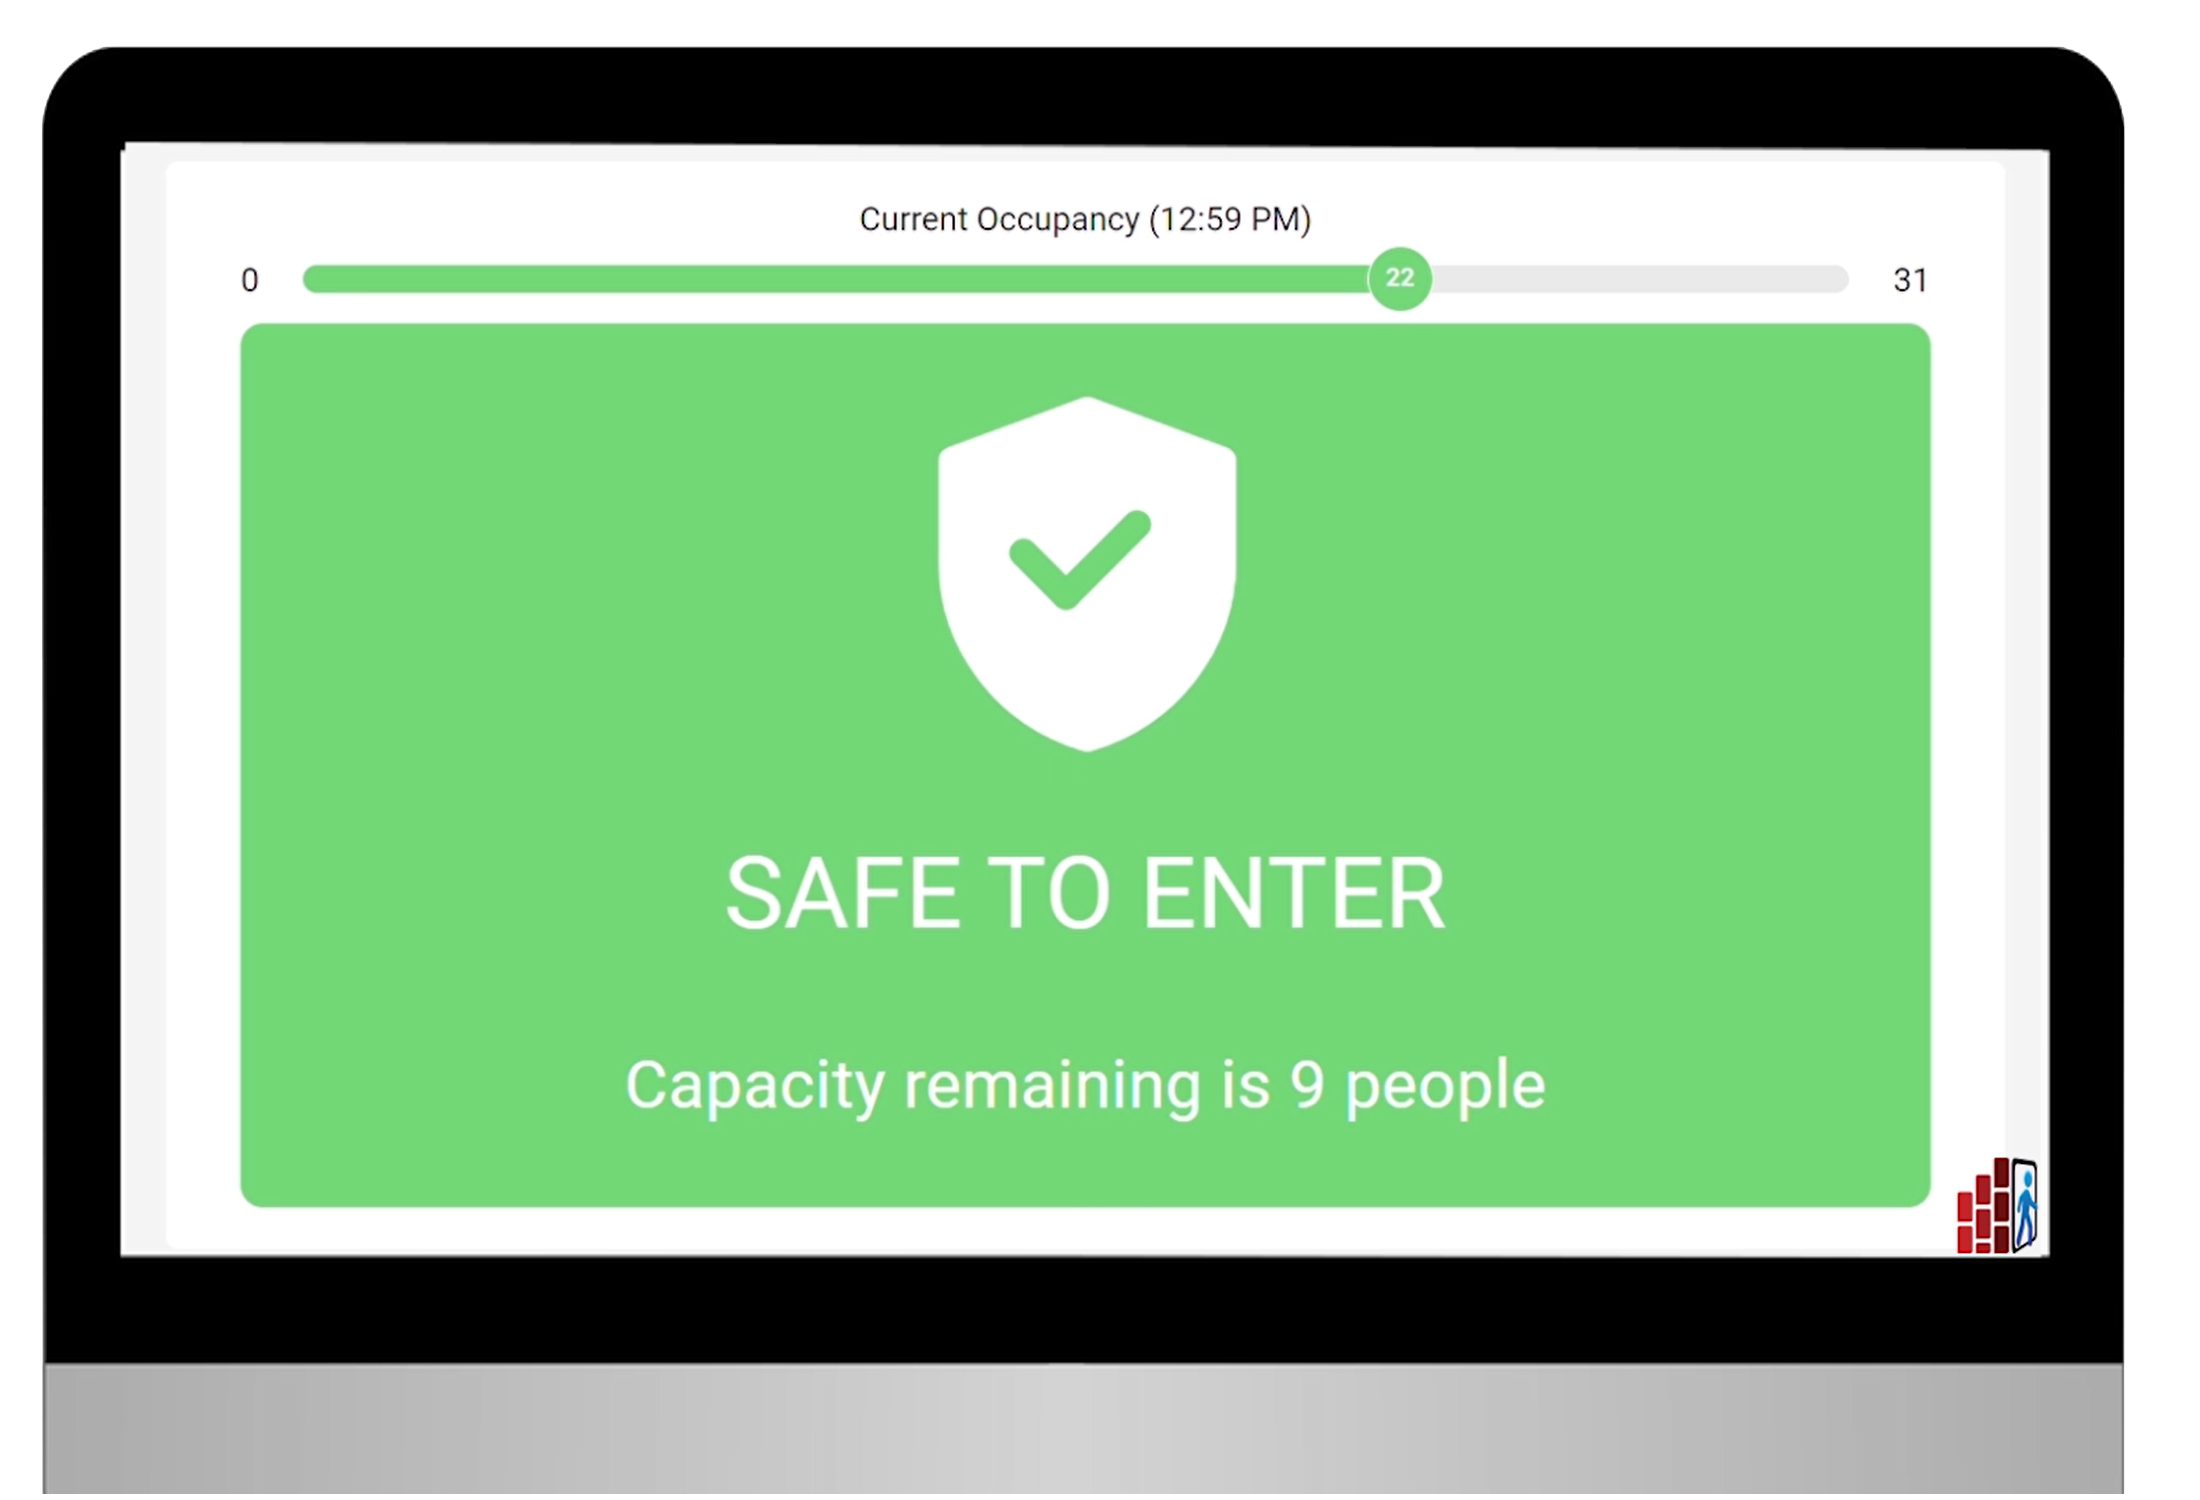 Safe to enter graphic on a computer